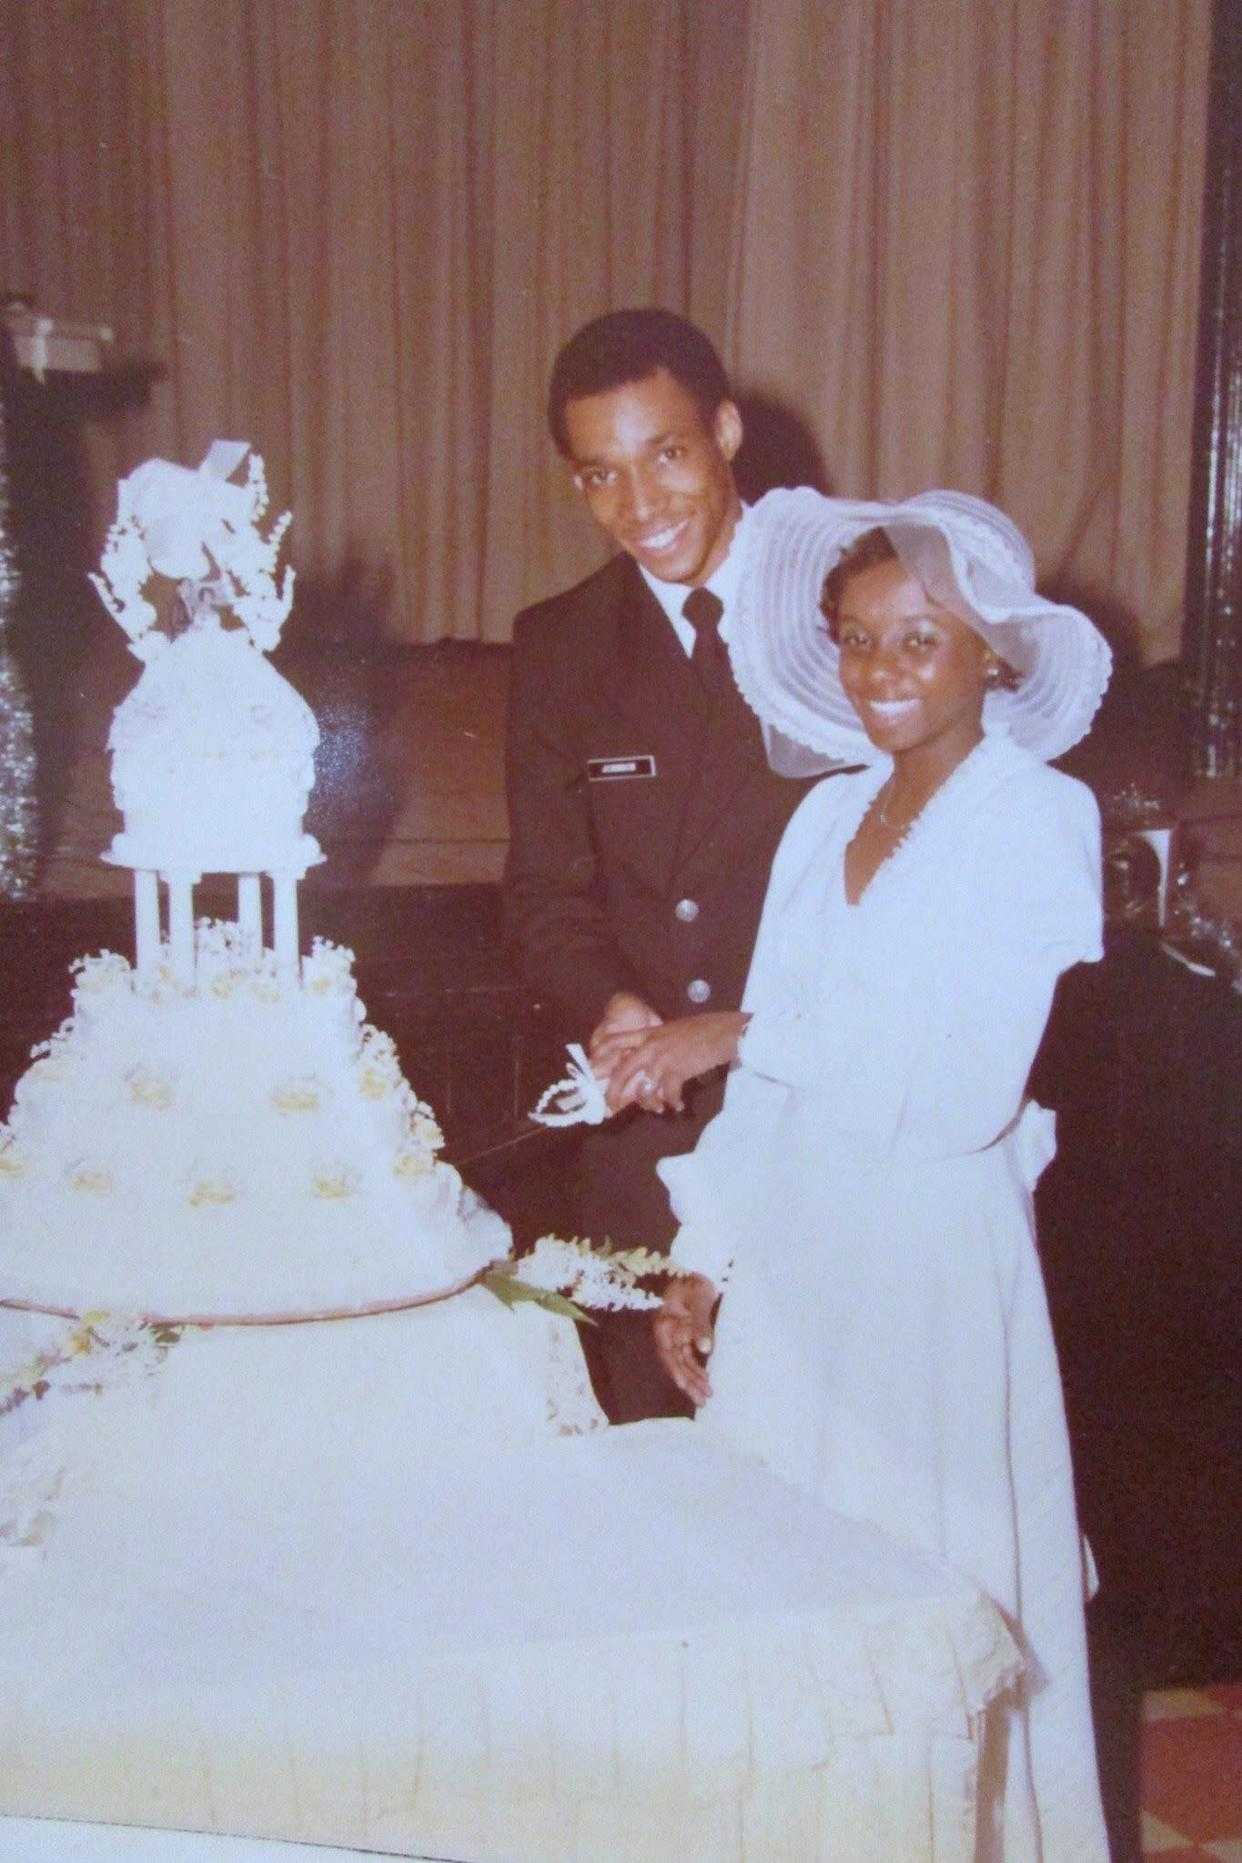 """When I got married, my grandmother and grandfather had been married some 68 years. My grandmother gave me her blessings and told me that if I got married, I had to stay married and it was a lifetime commitment."" - <em>Leslie Johnson </em>"